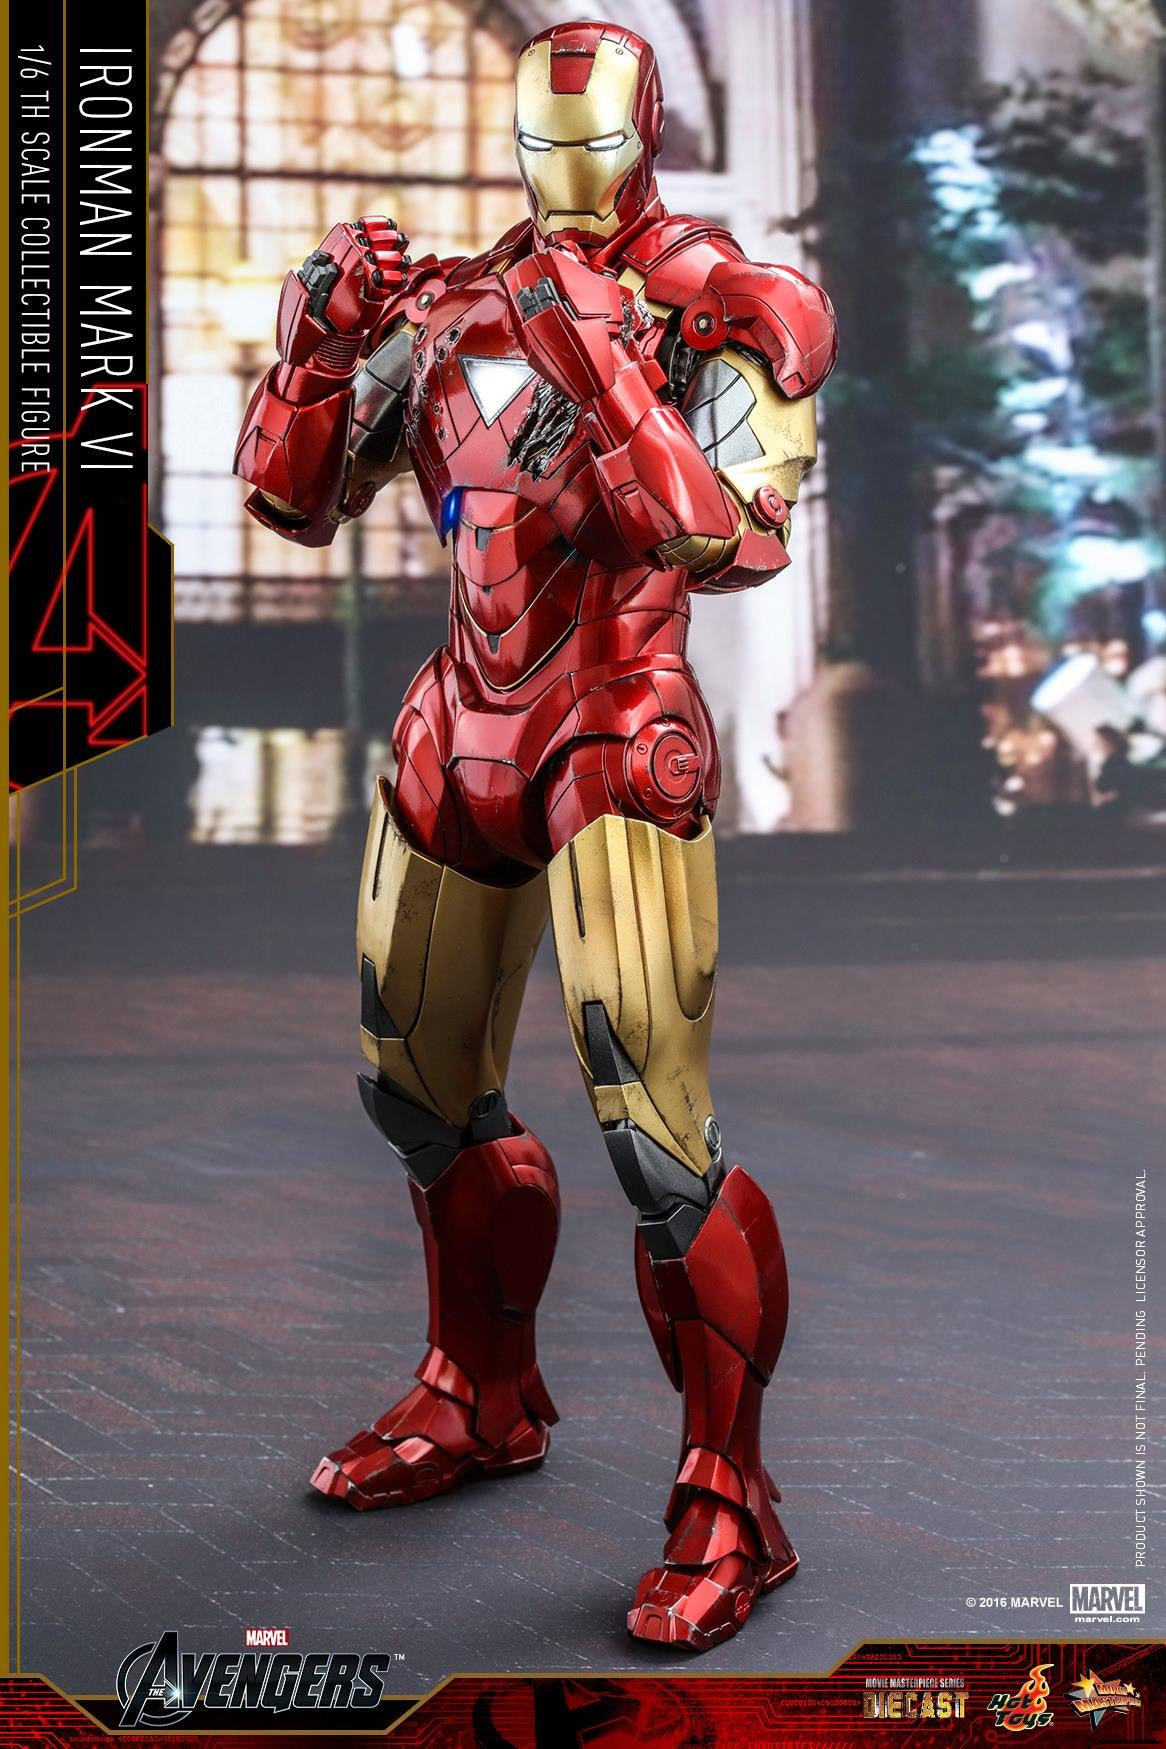 Hot Toys - MMS378D17 - The Avengers - Iron Man Mark VI (DIECAST) (Normal Edition) - Marvelous Toys - 15